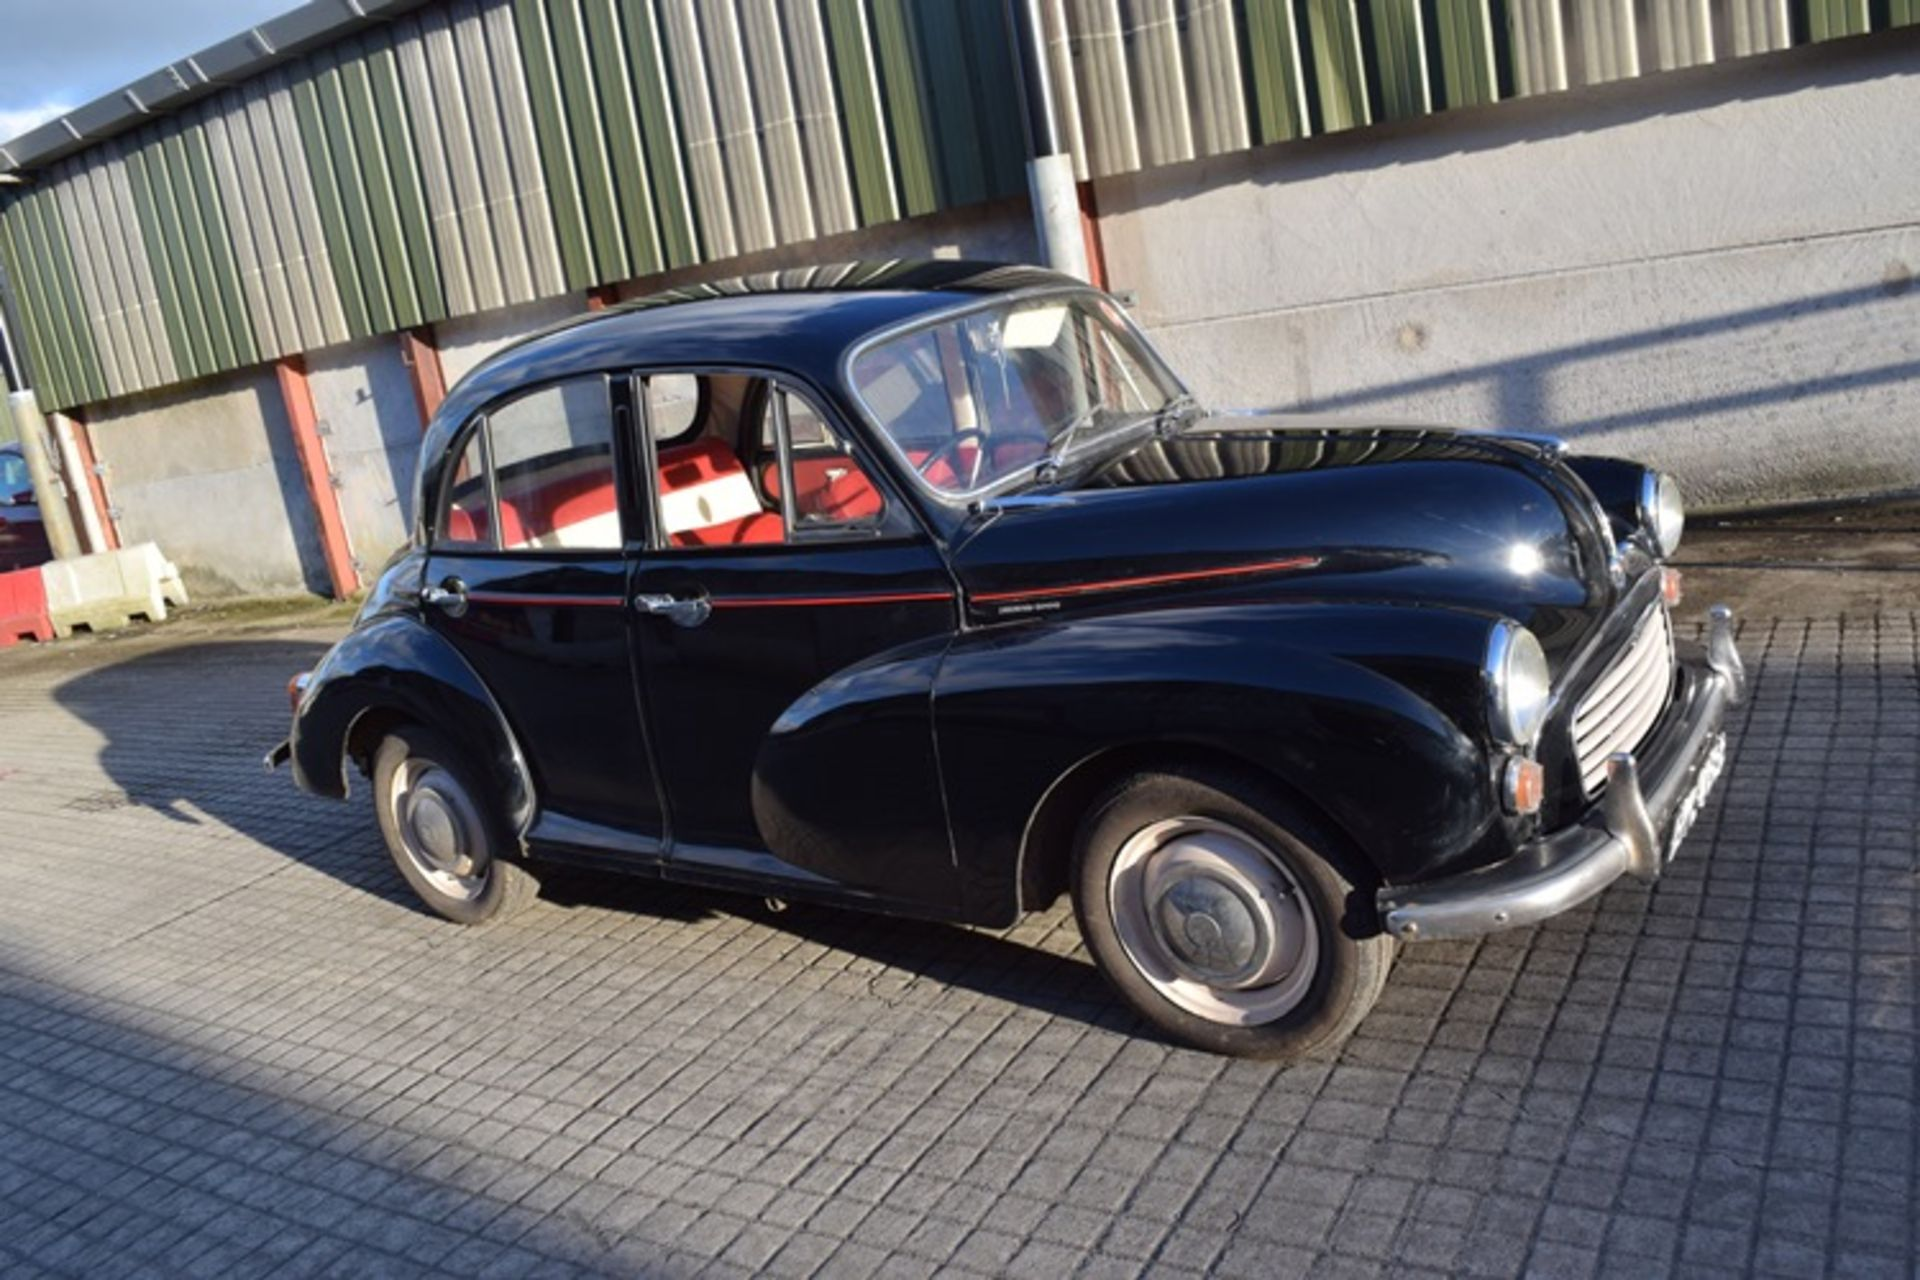 1964 Morris Minor 1000 in original black. The car has been restored with new flooring and vinyl - Image 14 of 16